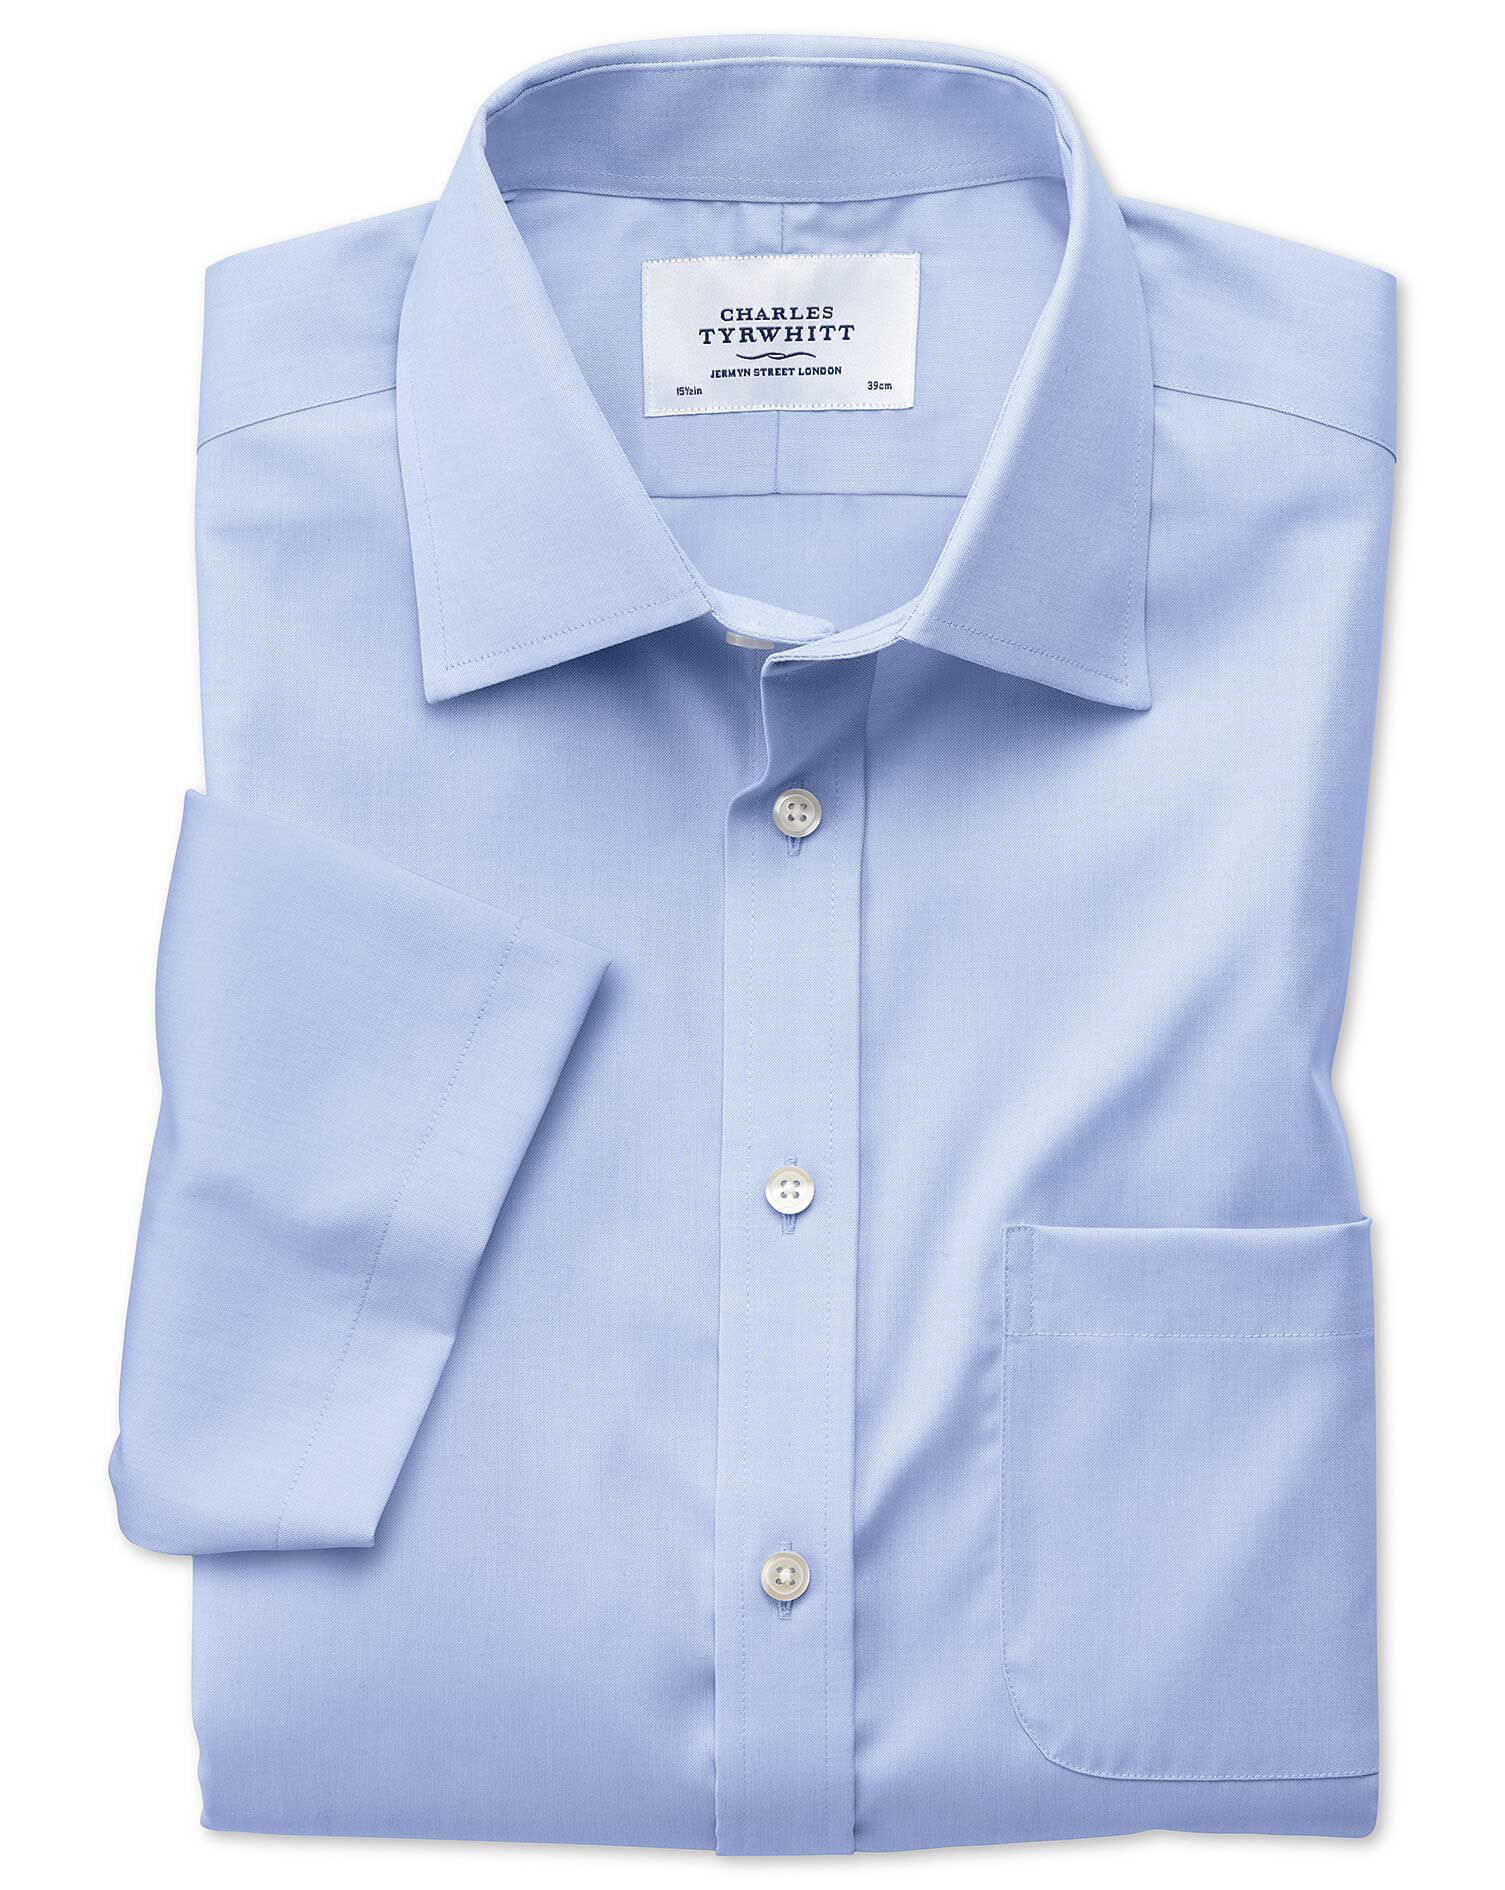 Slim Fit Non-Iron Pinpoint Short Sleeve Sky Blue Cotton Formal Shirt Size 17.5/Short by Charles Tyrw